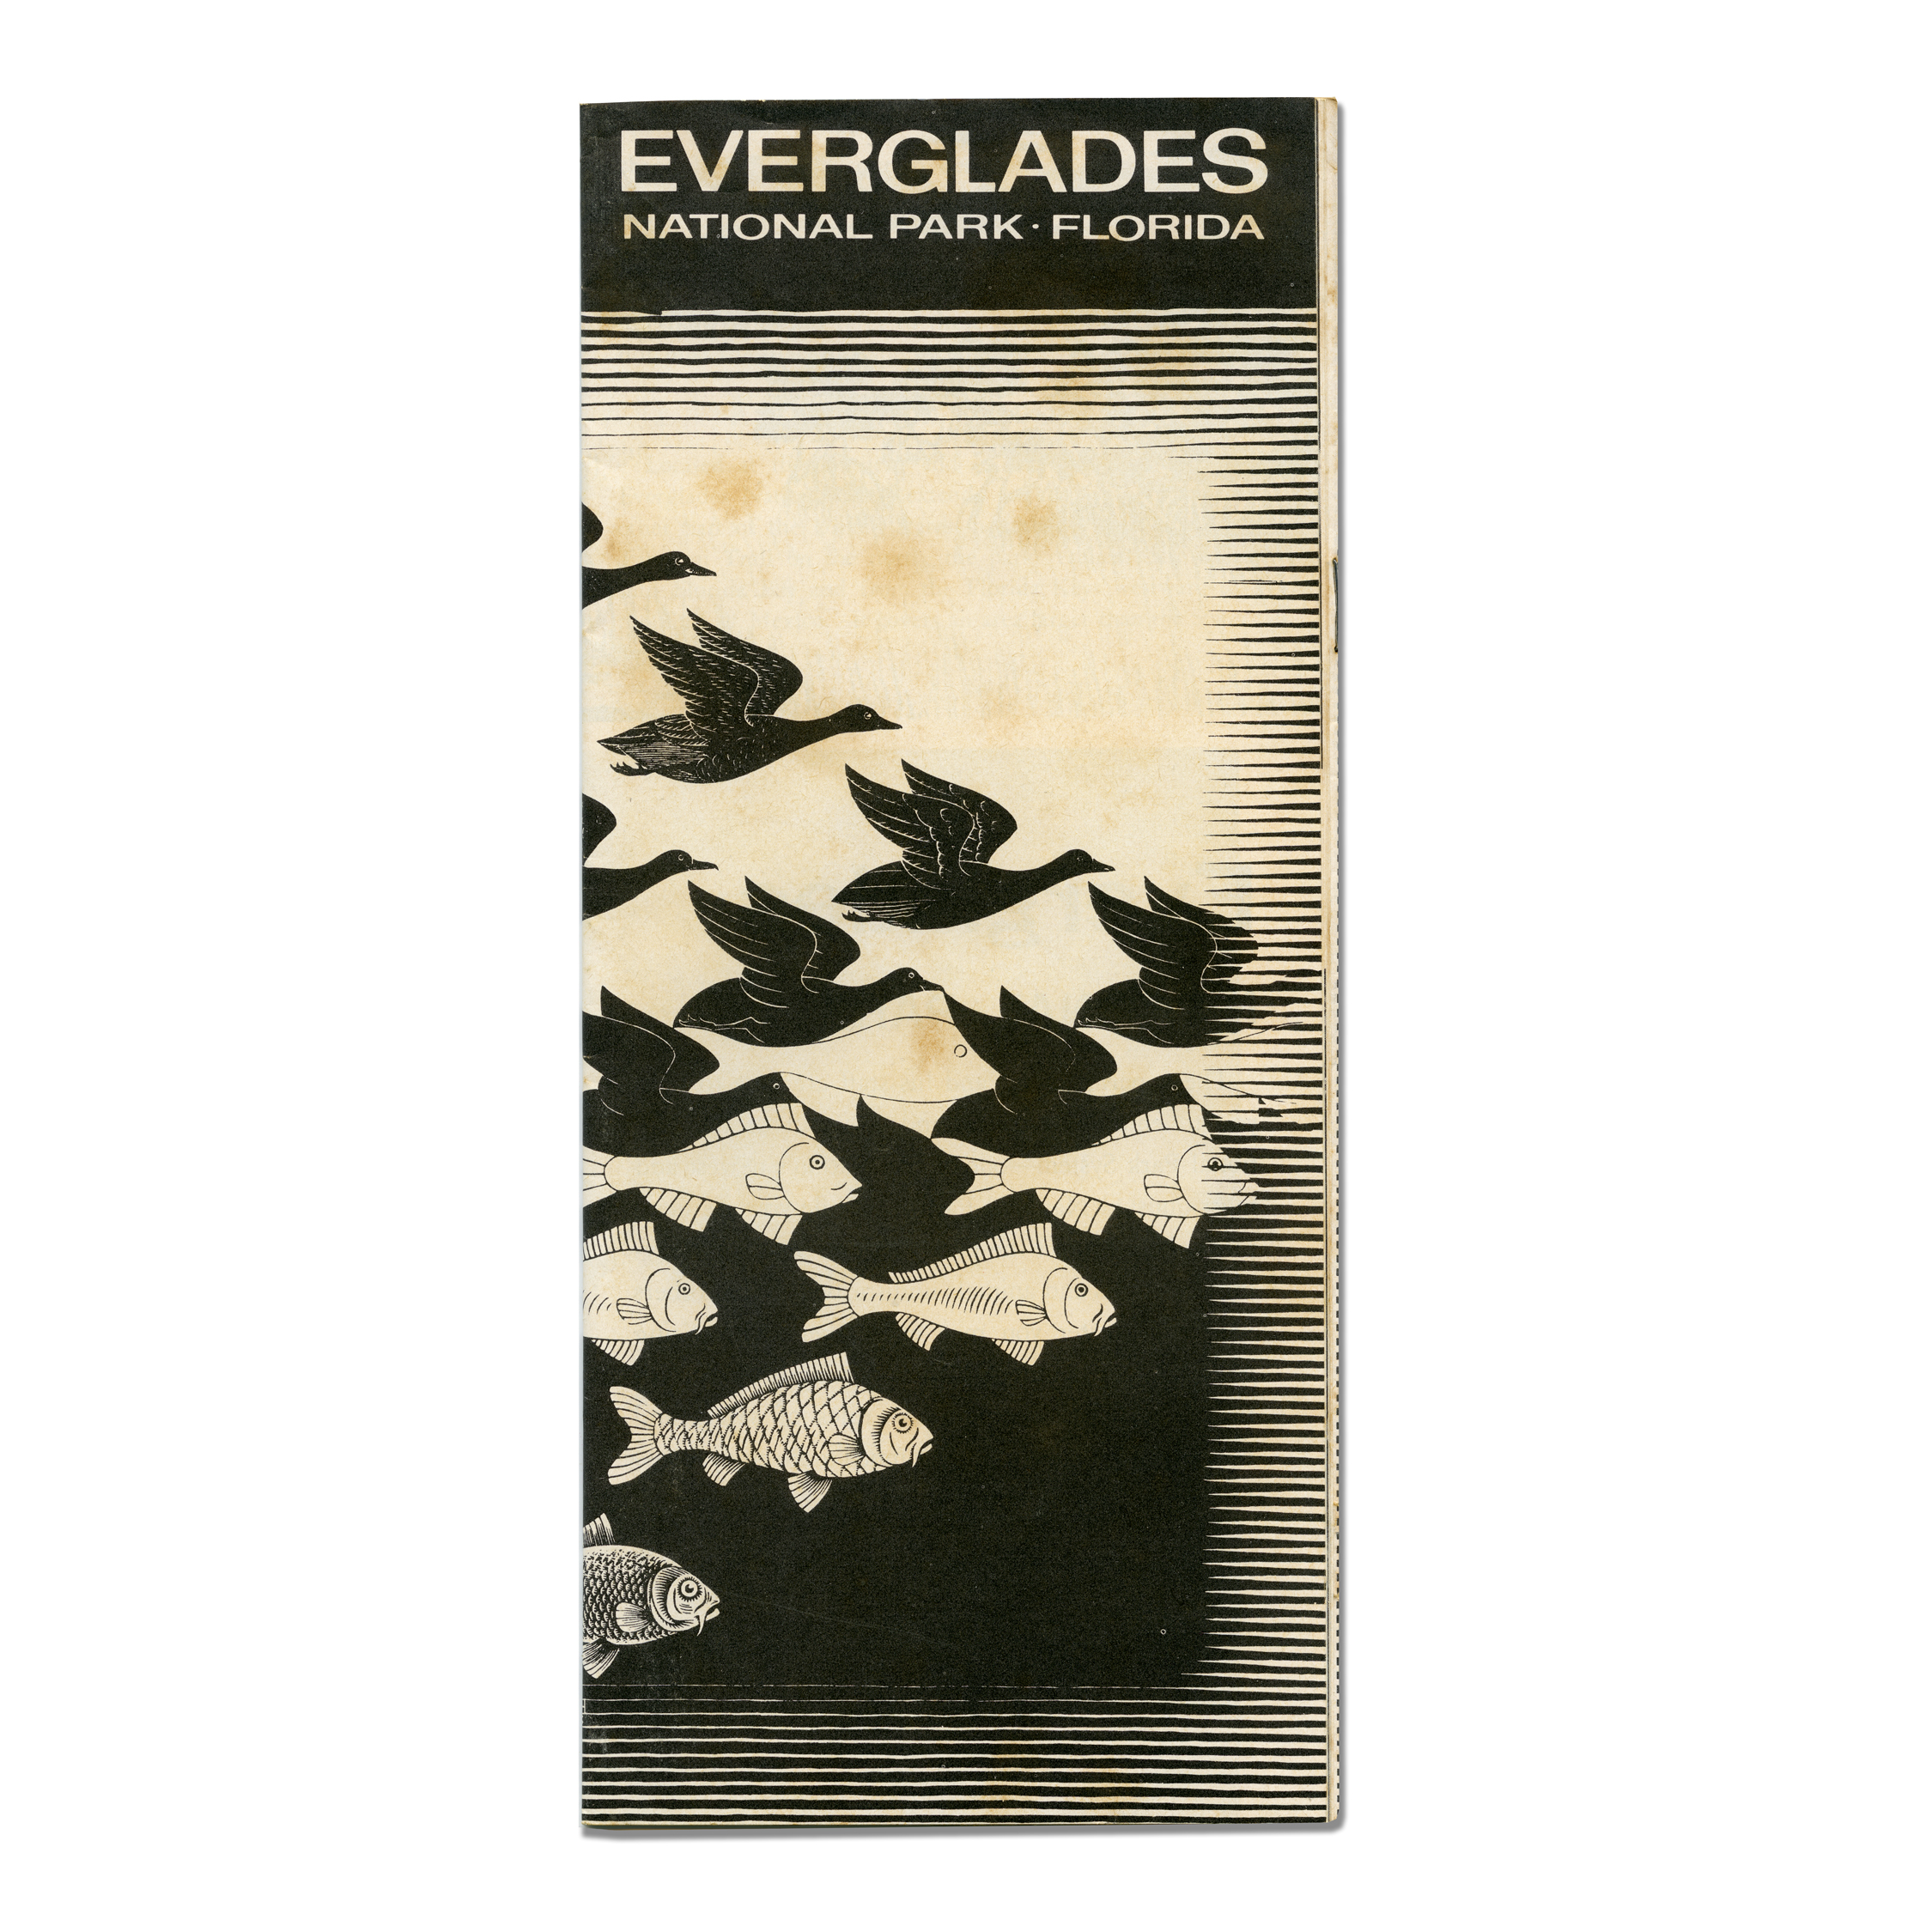 1963_everglades_national_park_brochure.jpg